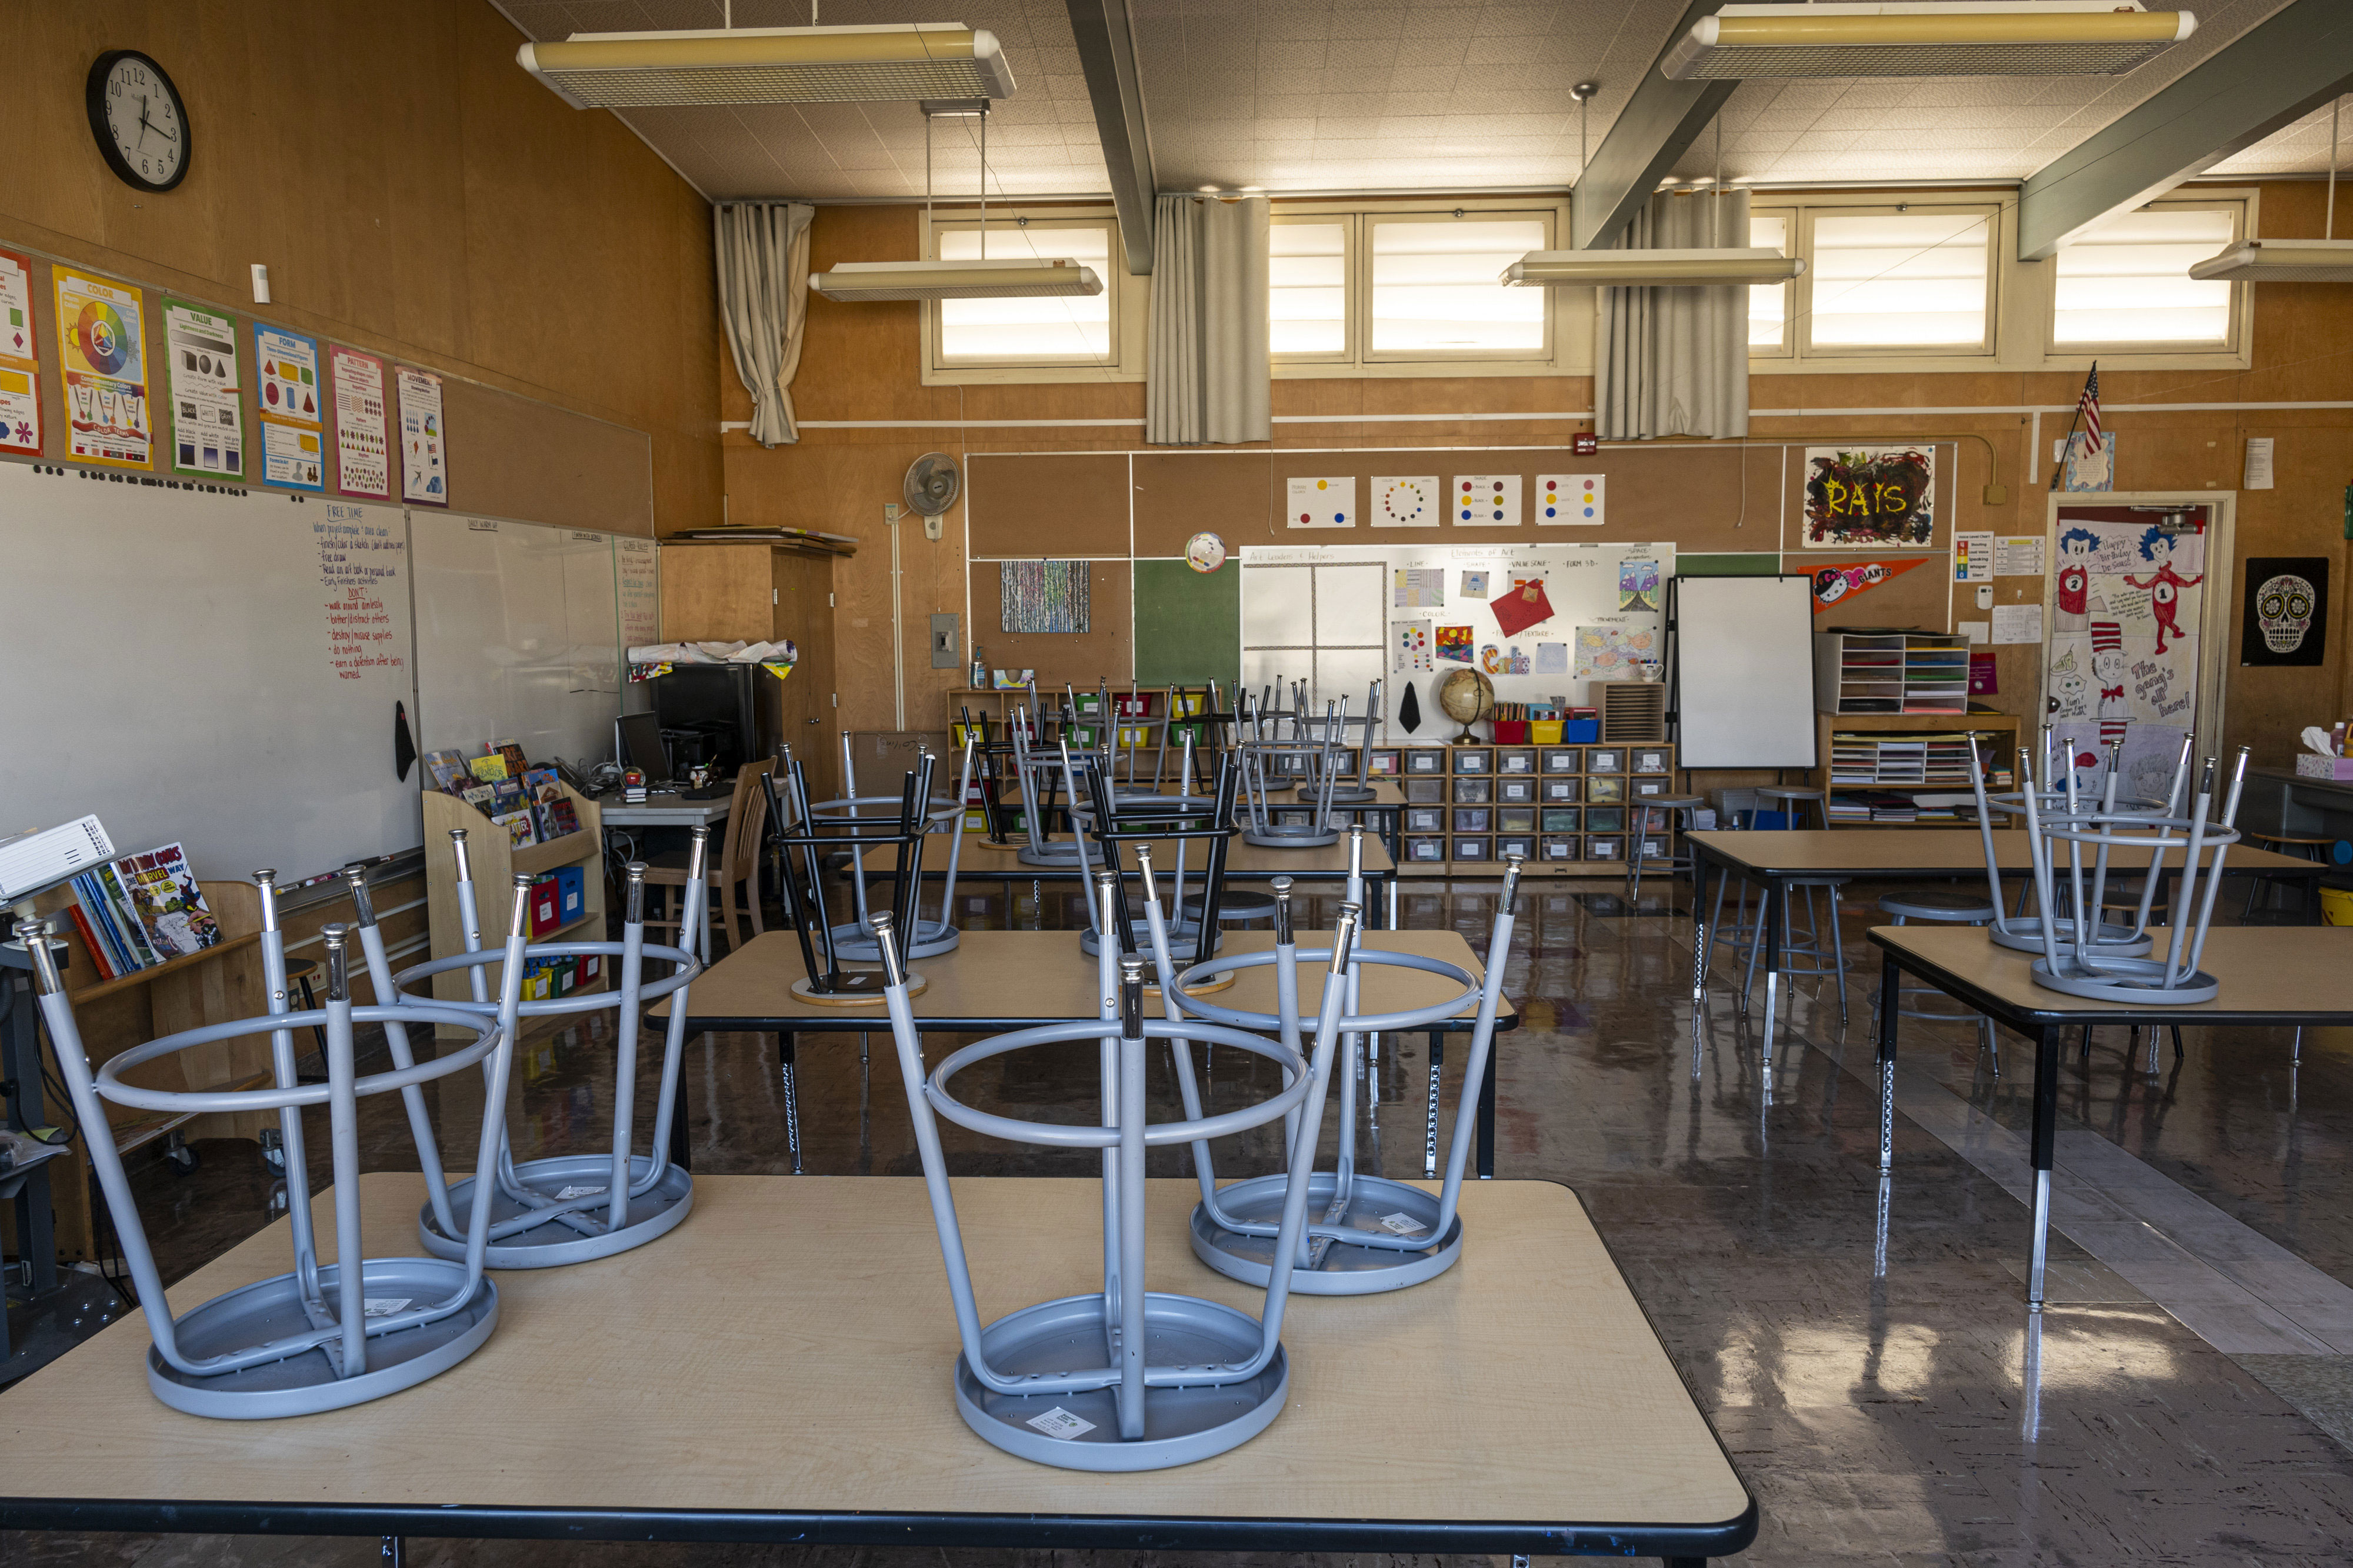 Stools are stacked on desks inside an empty classroom at Collins Elementary School in Pinole, California, on December 30, 2020.